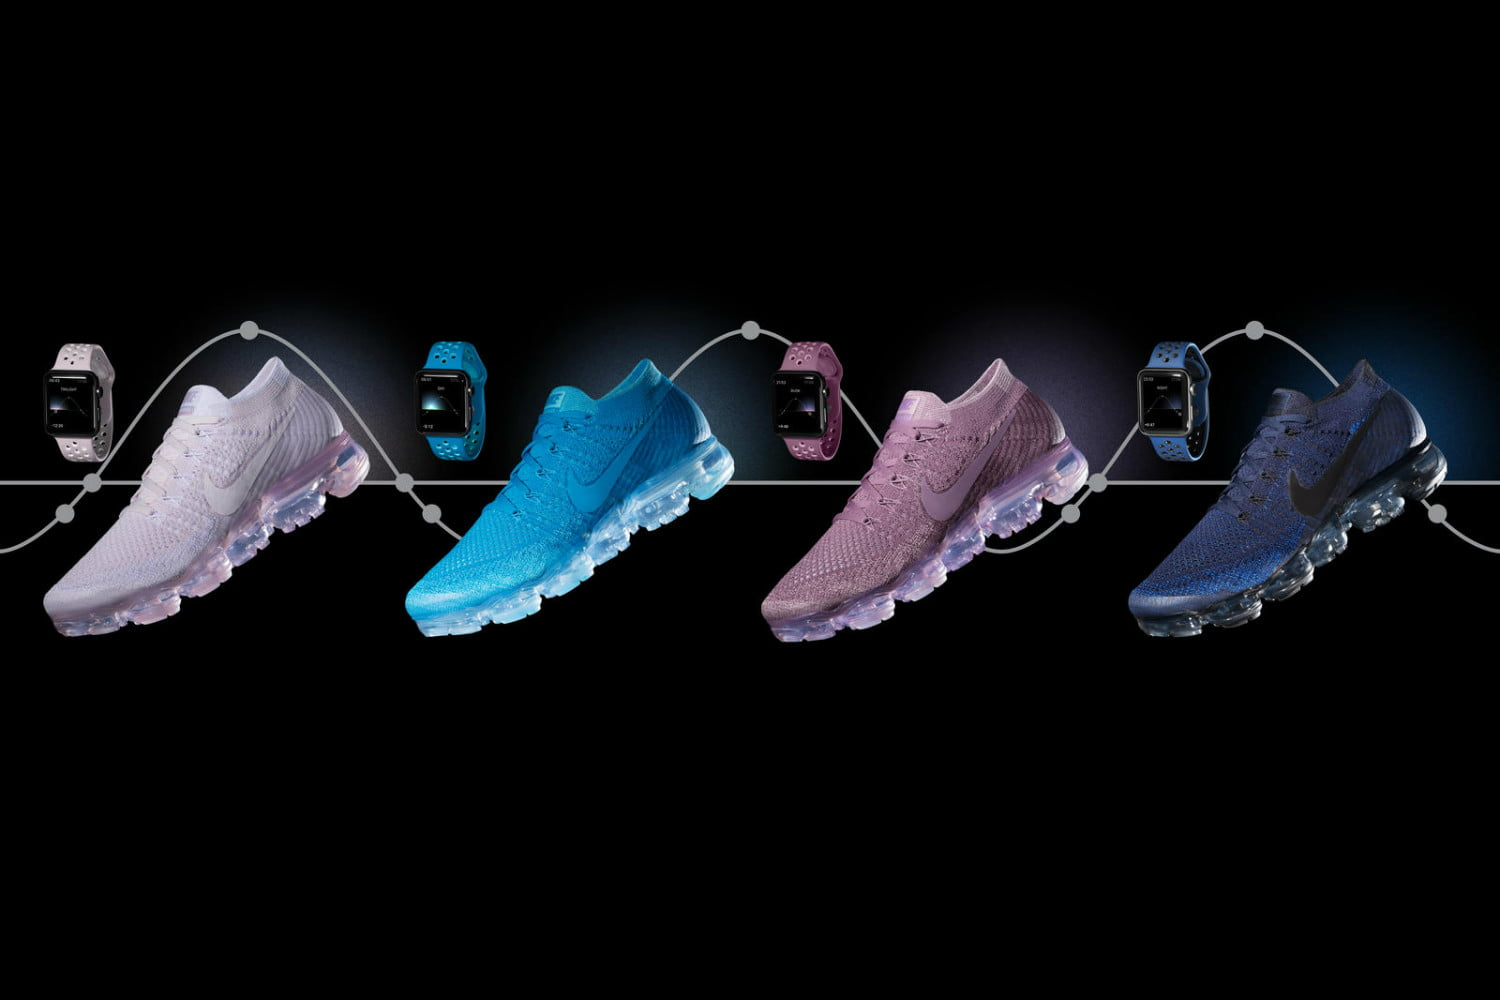 9f89607189 Nike's New Apple Watch Bands Match Your Cool New VaporMax Sneakers |  Digital Trends